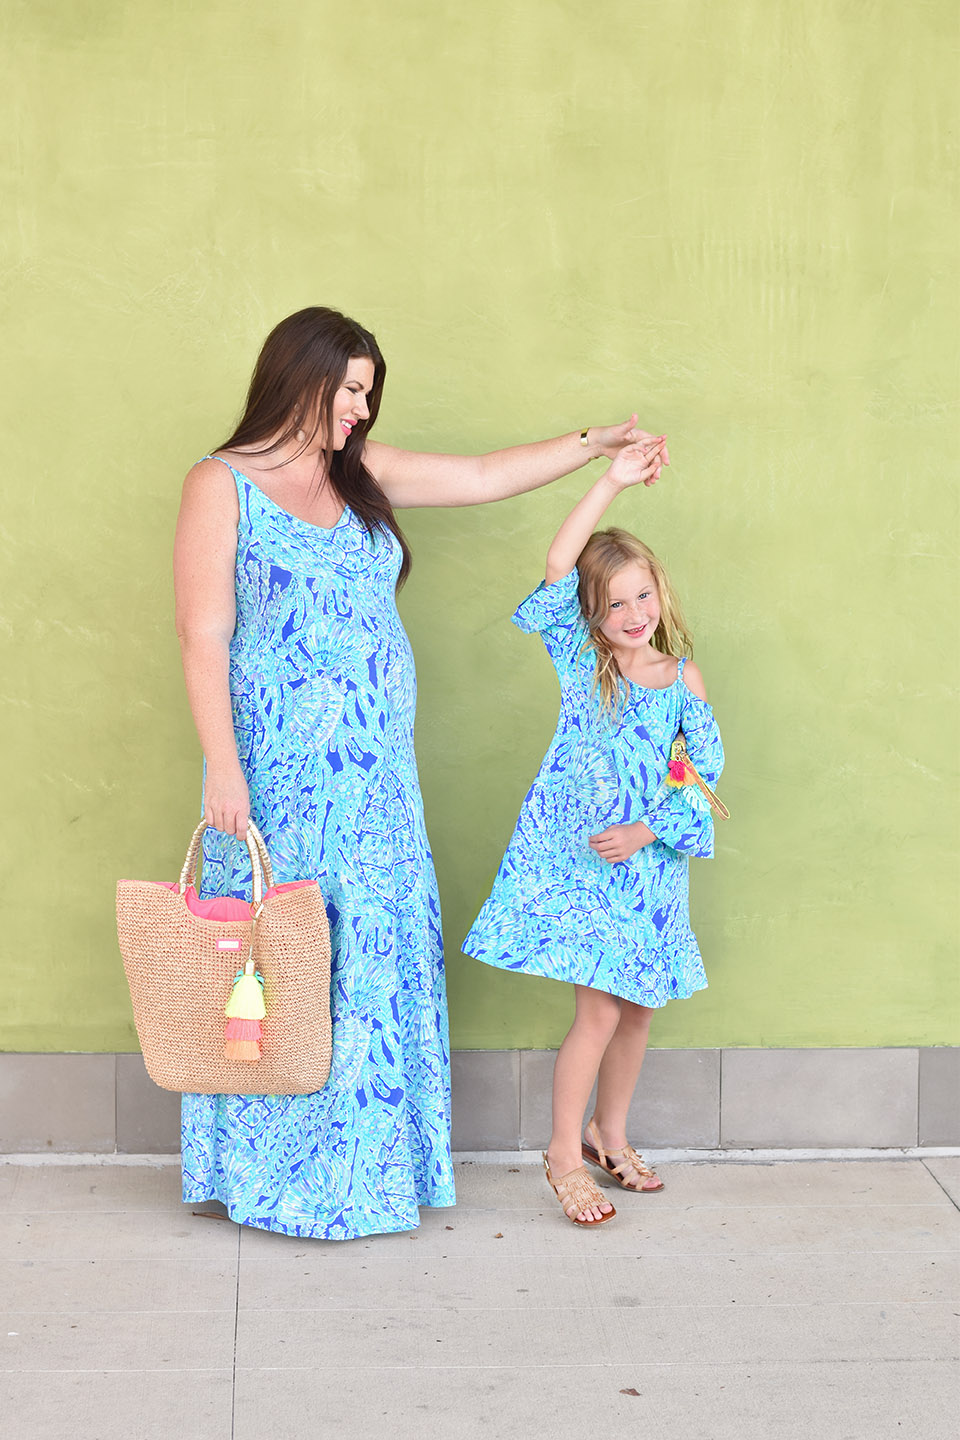 Jami Ray Grand Boulevard Lilly Pulitzer Allair Maxi Dress Mommy and Me